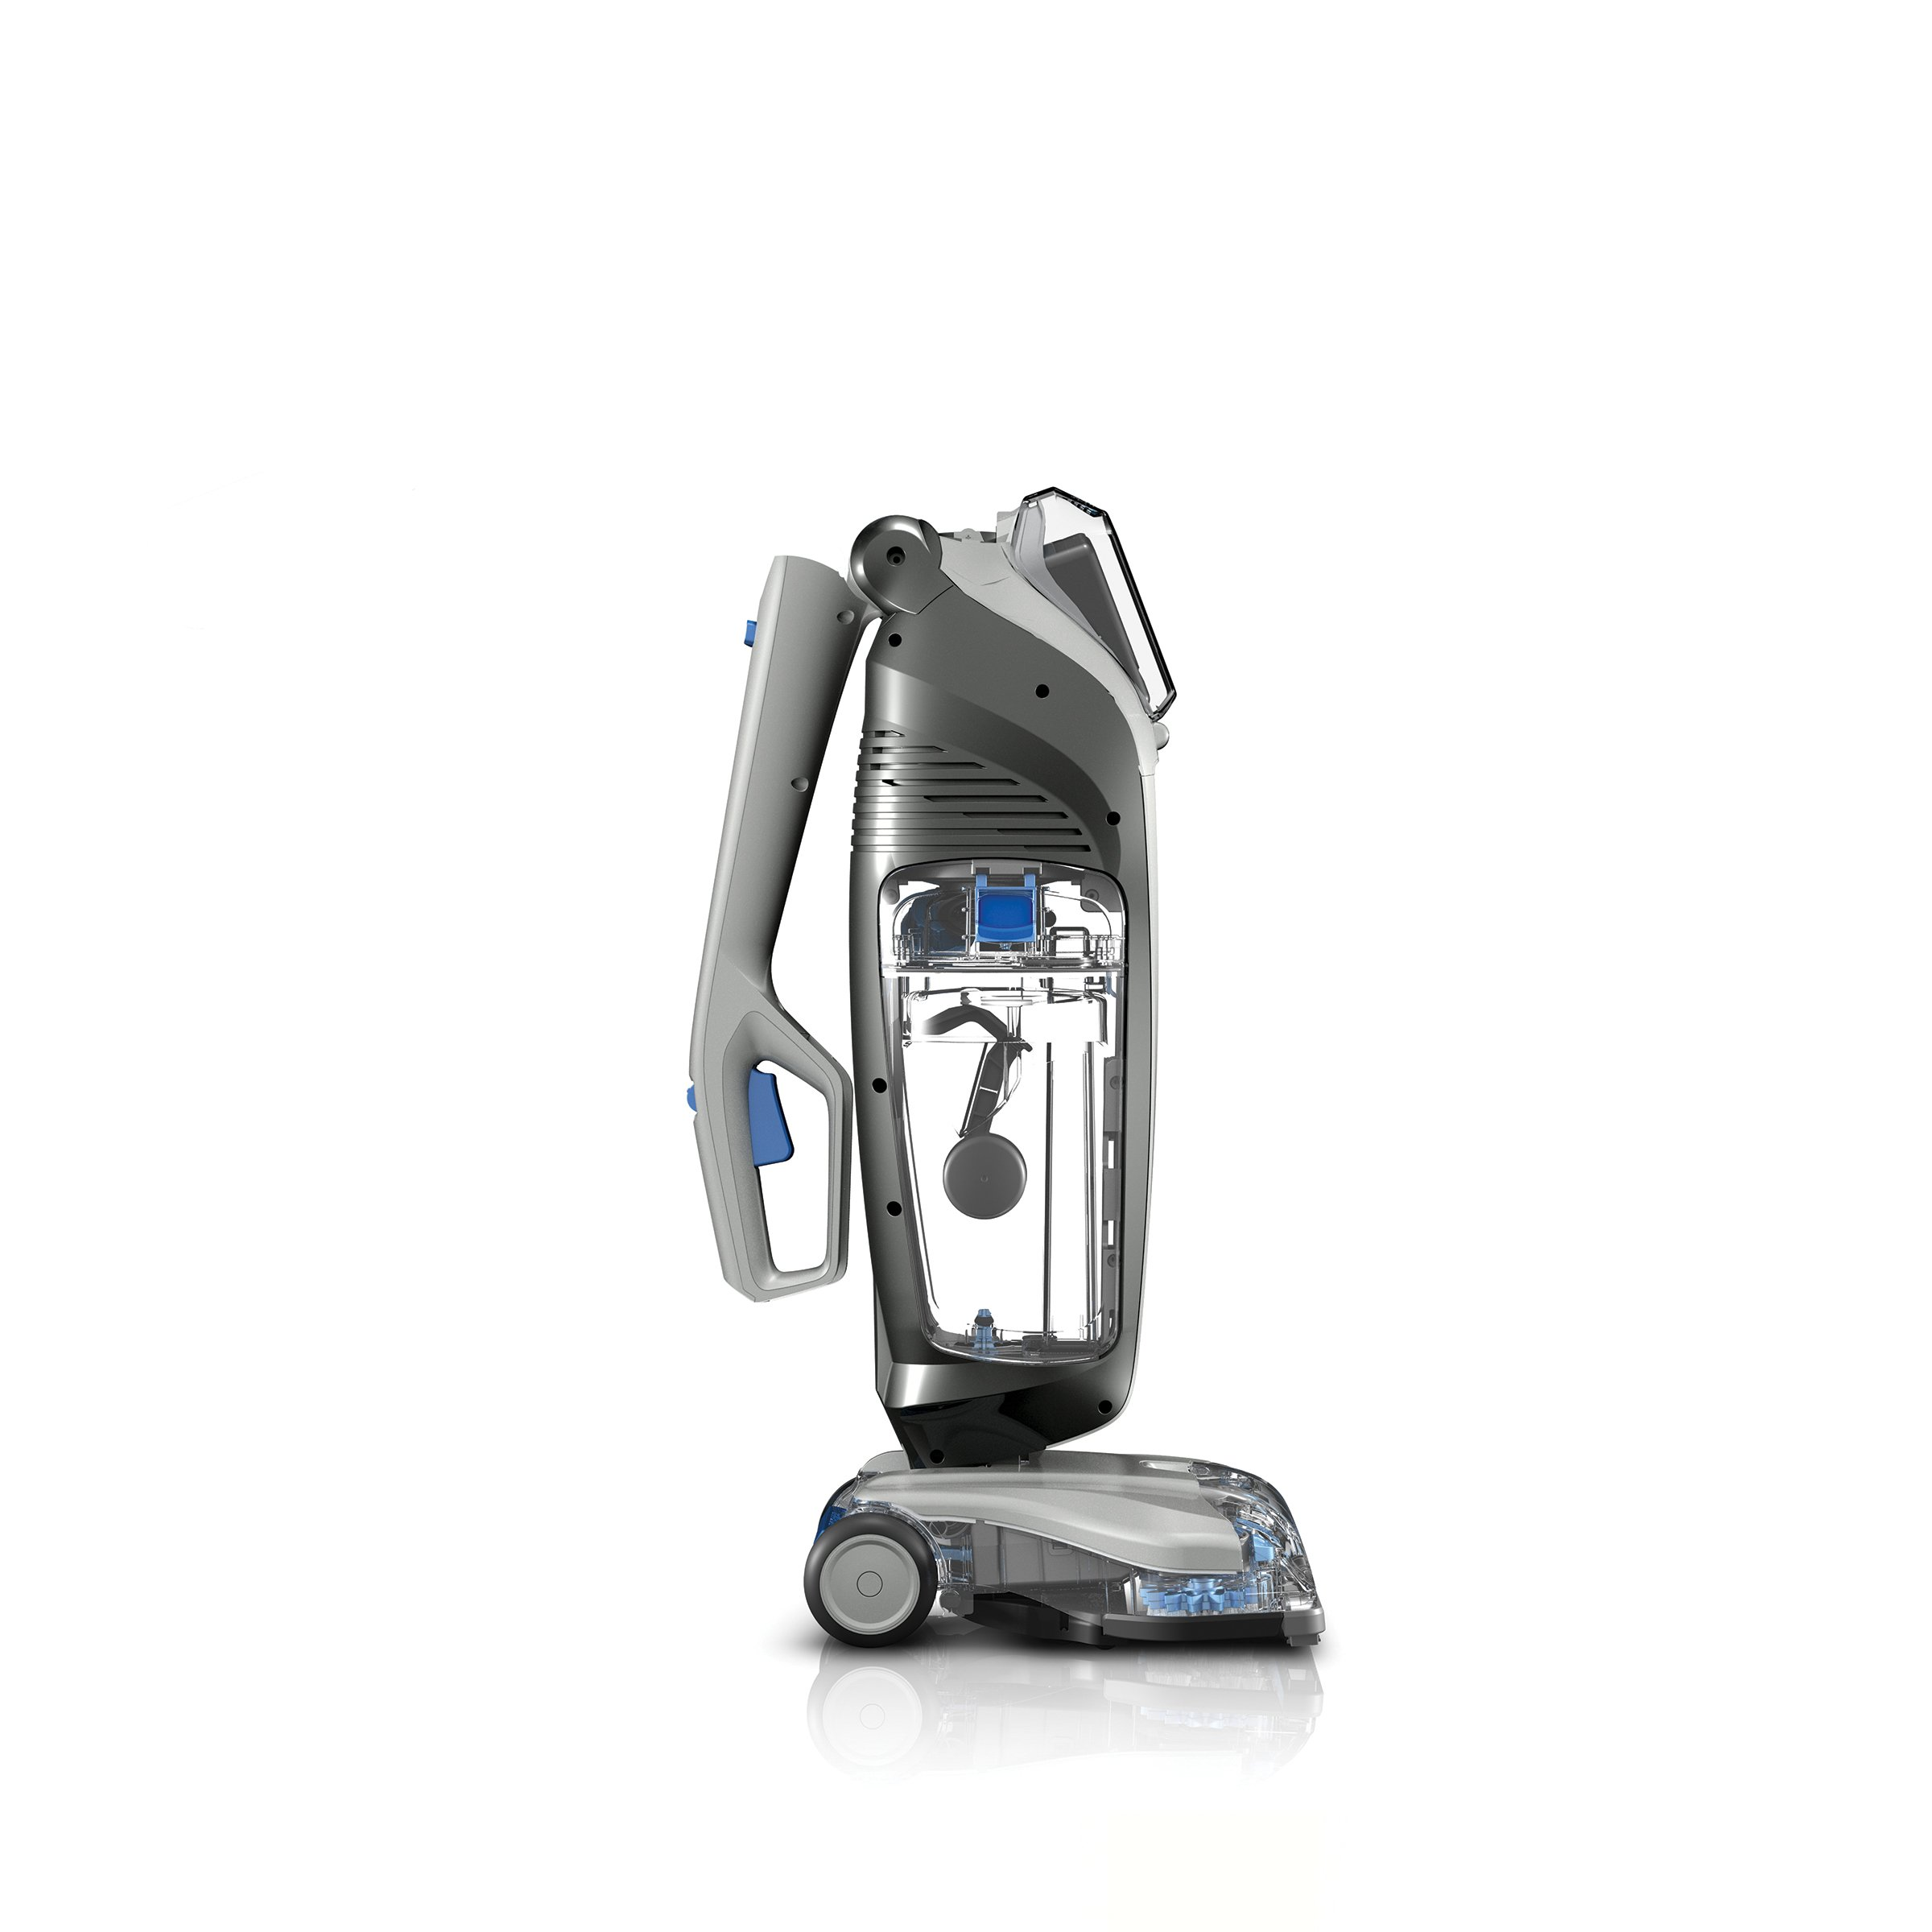 Hoover FloorMate Cordless Hard Floor Cleaner, BH55100PC by Hoover (Image #8)